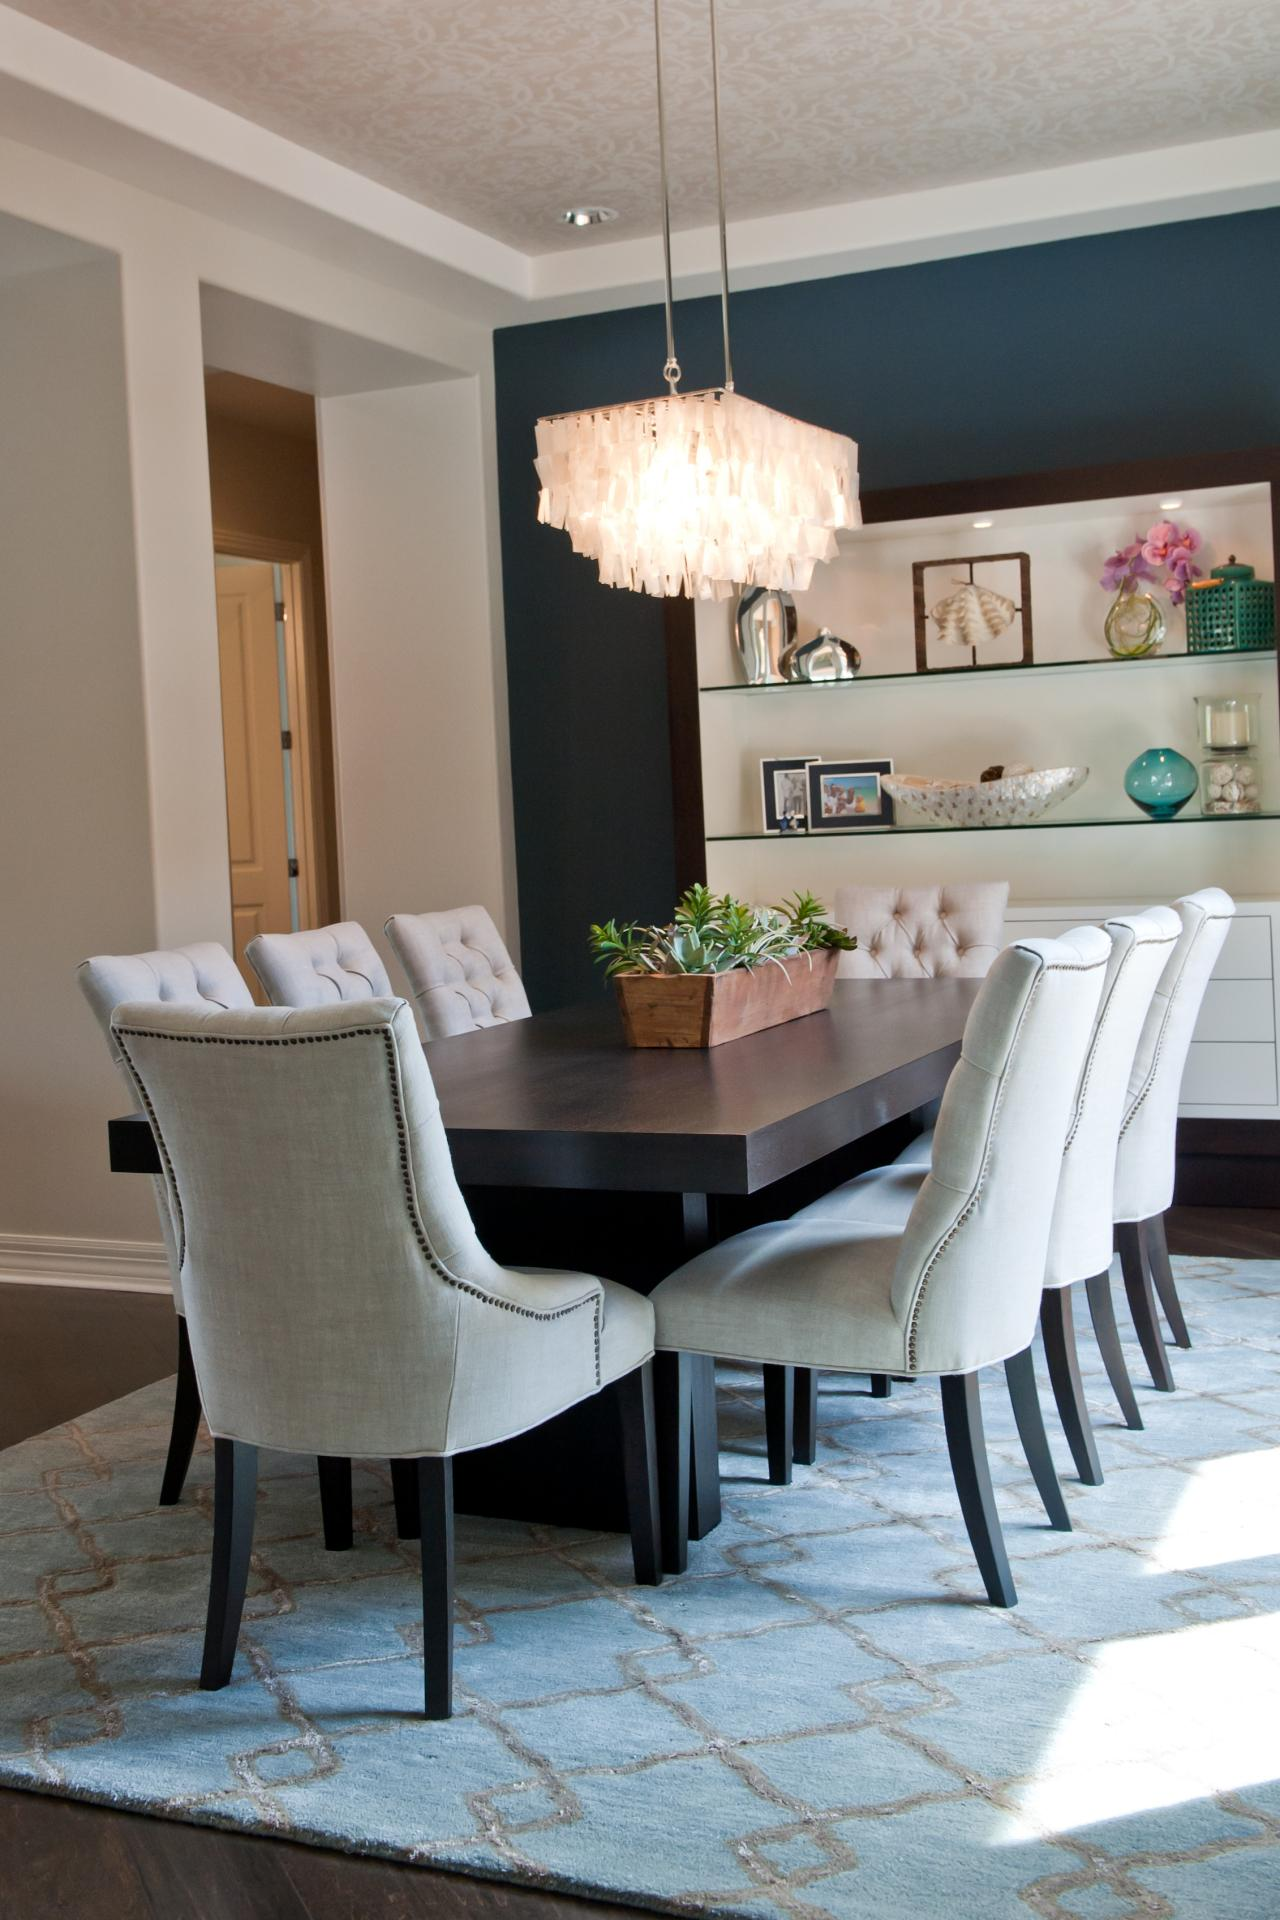 Photos hgtv for 10x10 dining room